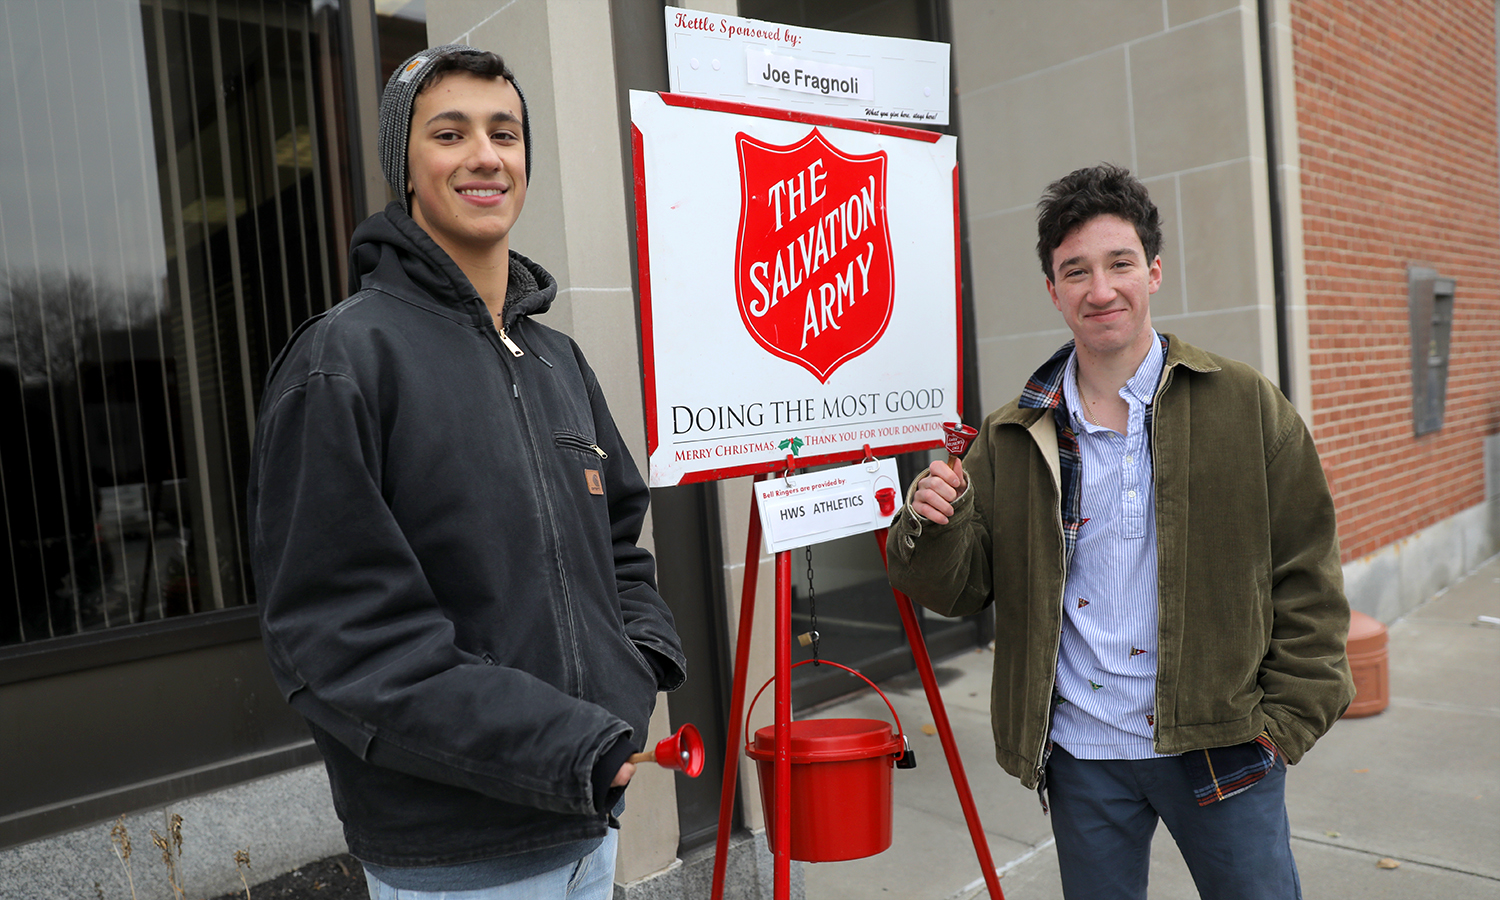 Hobart Cross Country runners Jeremiah Piersante and Max Tulchinsky volunteer as bell ringers for The Salvation Army outside of Community Bank in downtown Geneva.